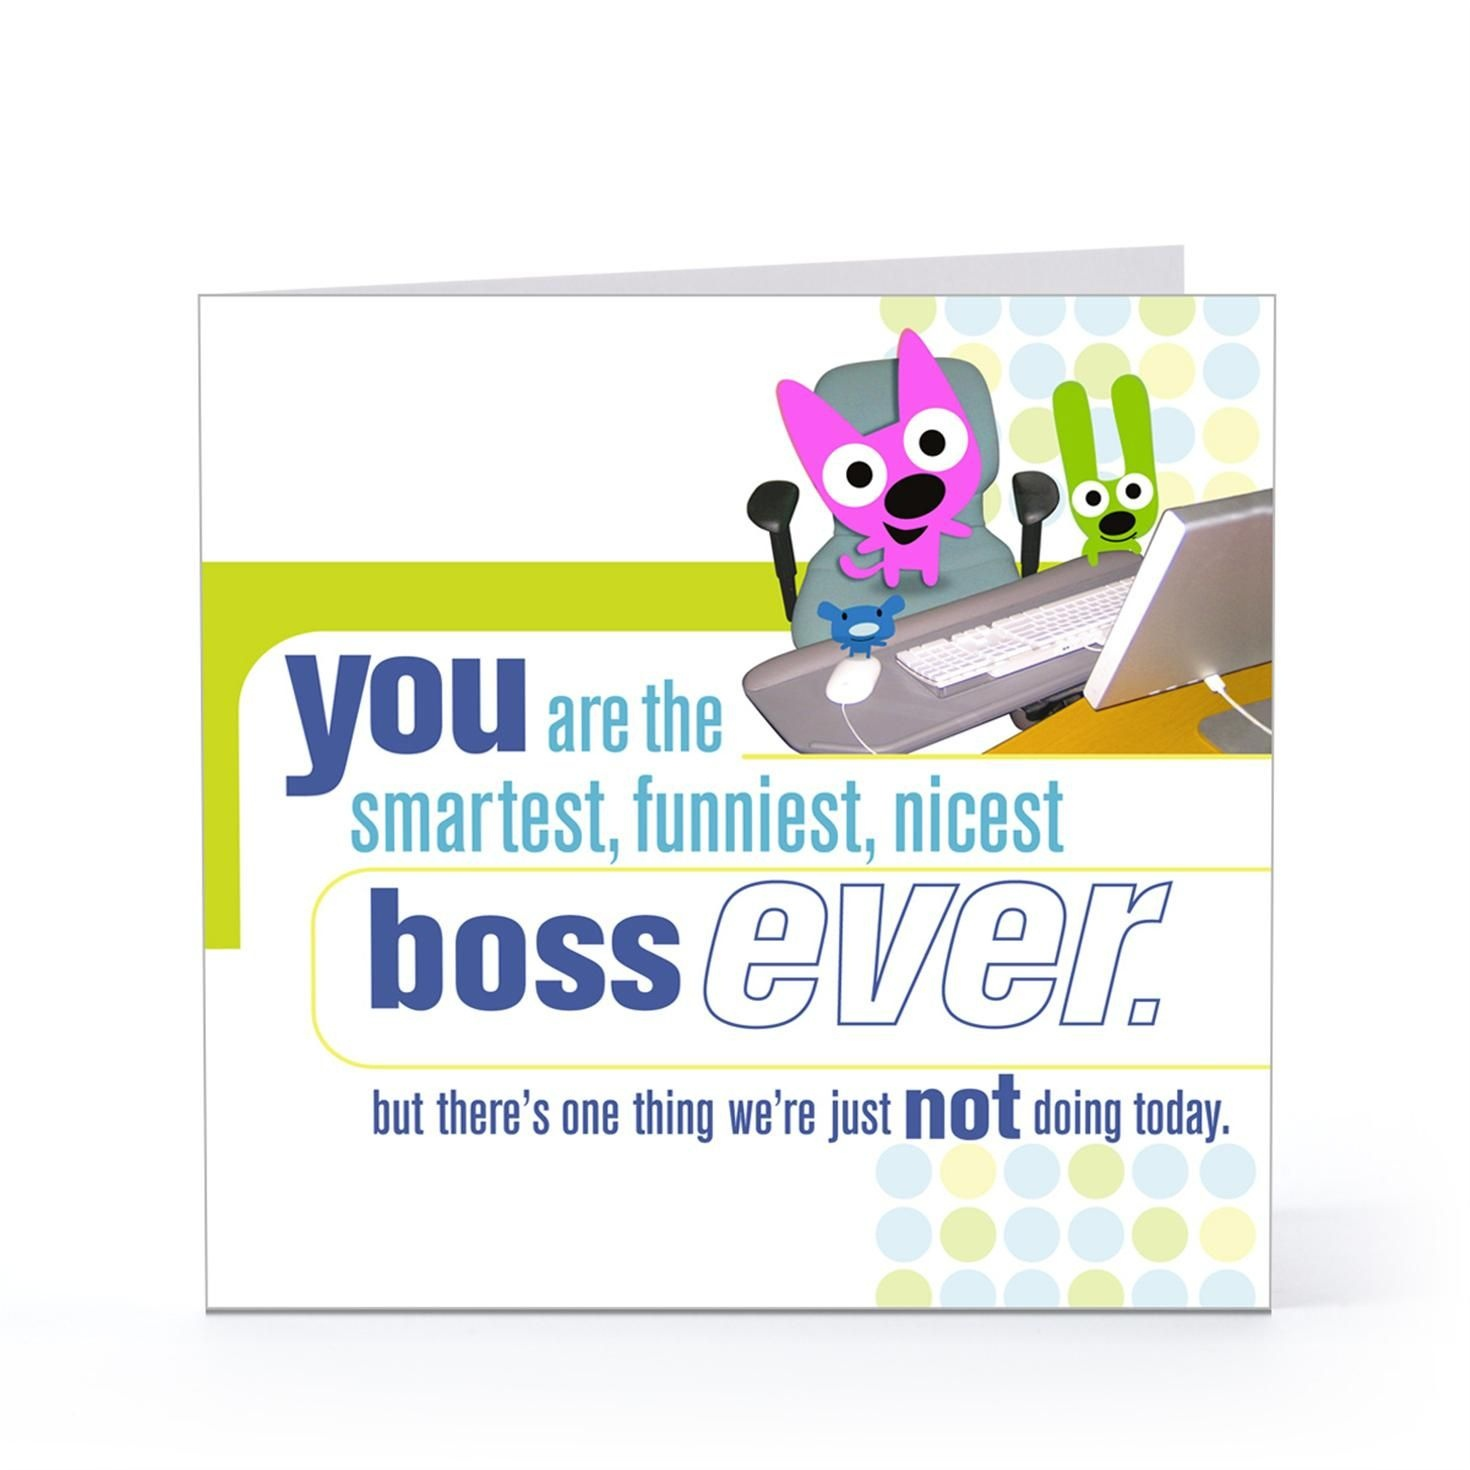 Boss Day Quotes For Facebook | Happy Boss Day Quotes Funny | Boss - Boss Day Cards Free Printable